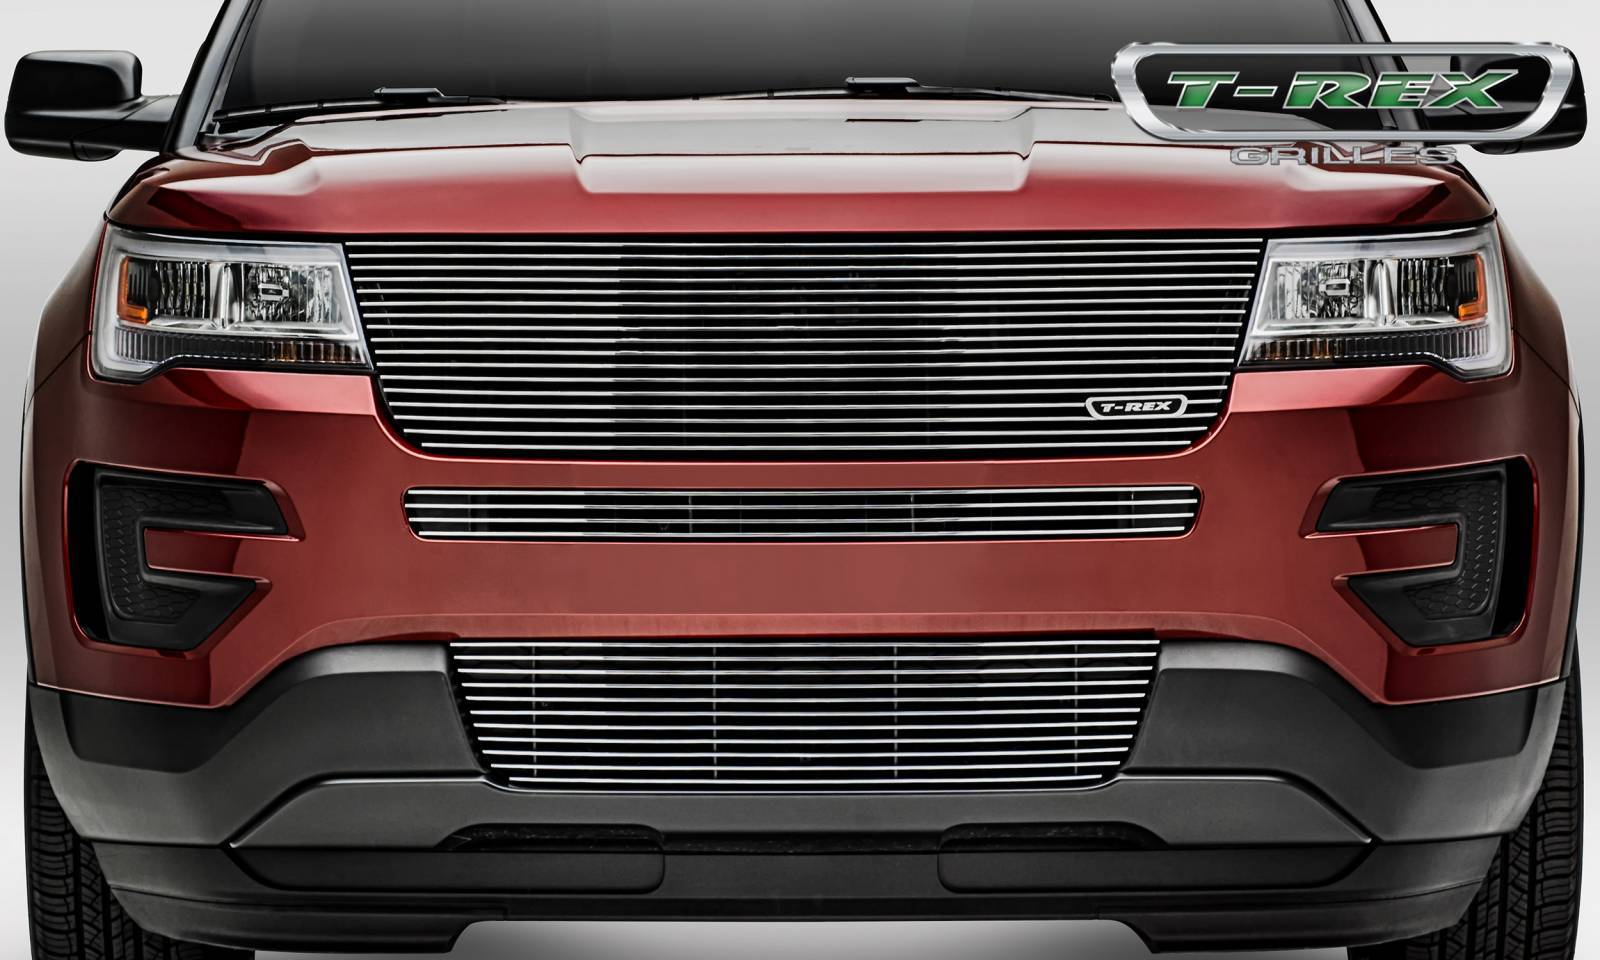 Ford Explorer - Laser Billet Series - Replacement - Main Grille w/o Logo Recess - Polished - Pt # 6216650